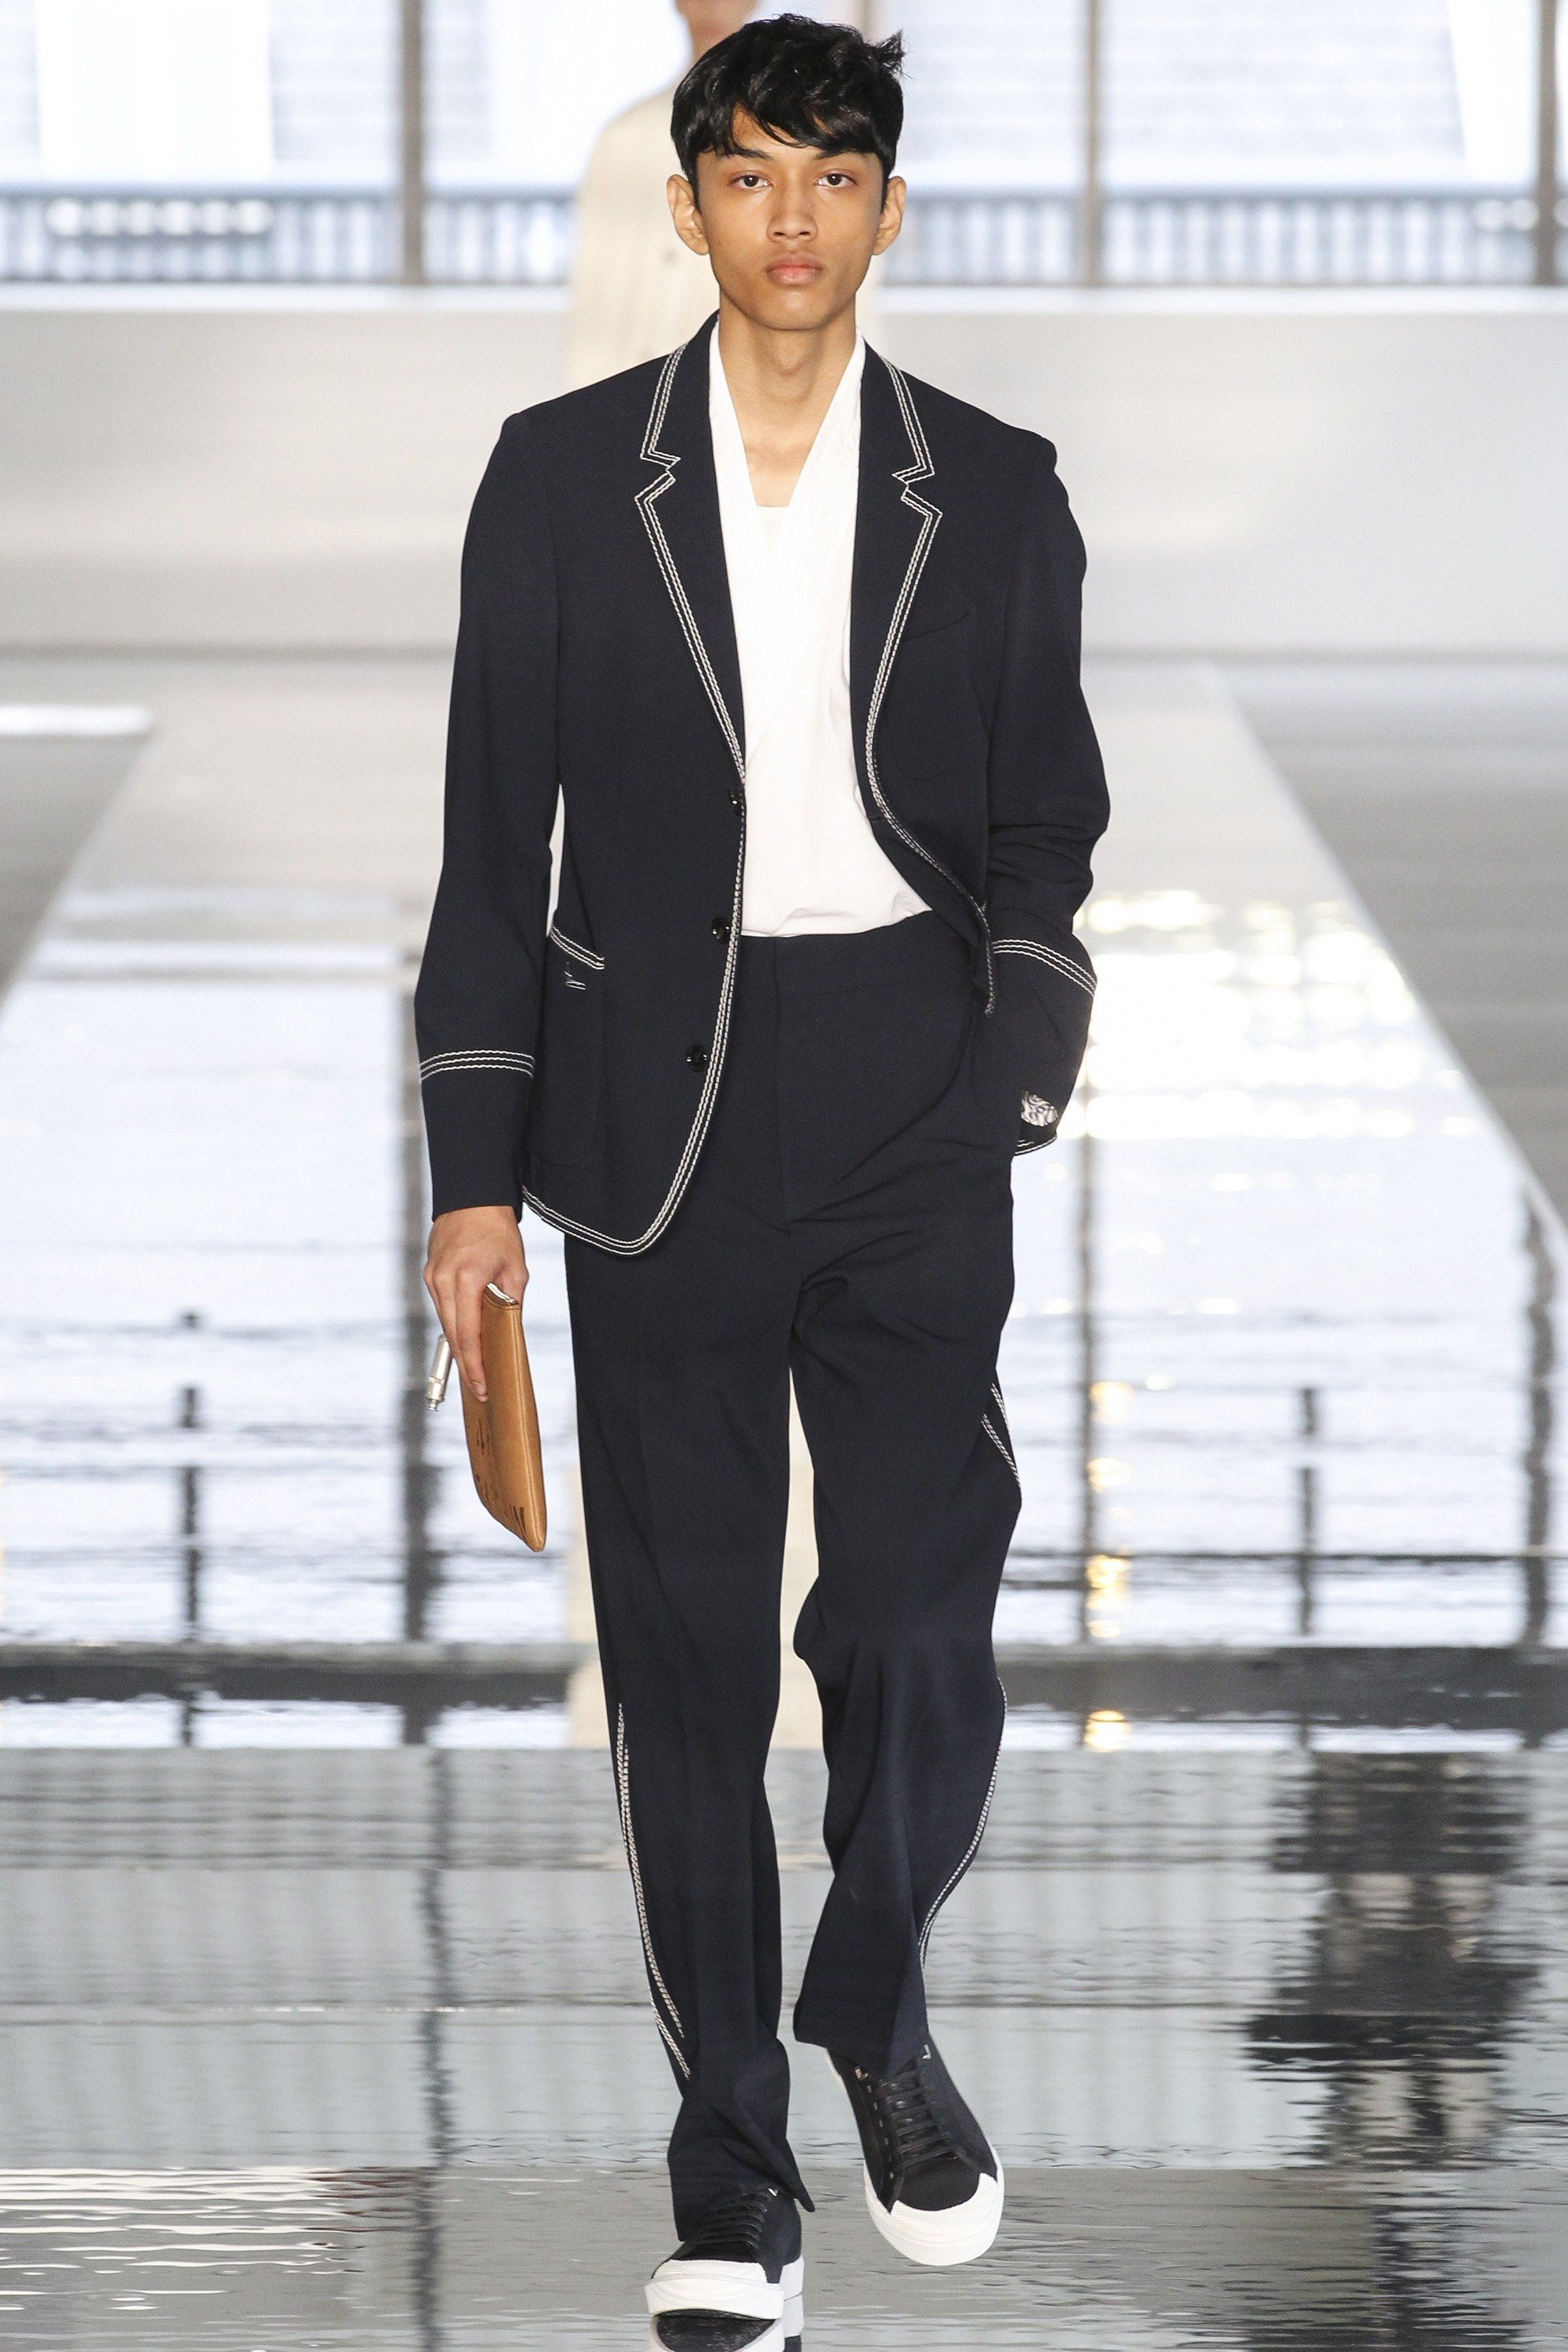 c86283df43a6 Boss Spring 2018 Menswear Collection Photos - Vogue